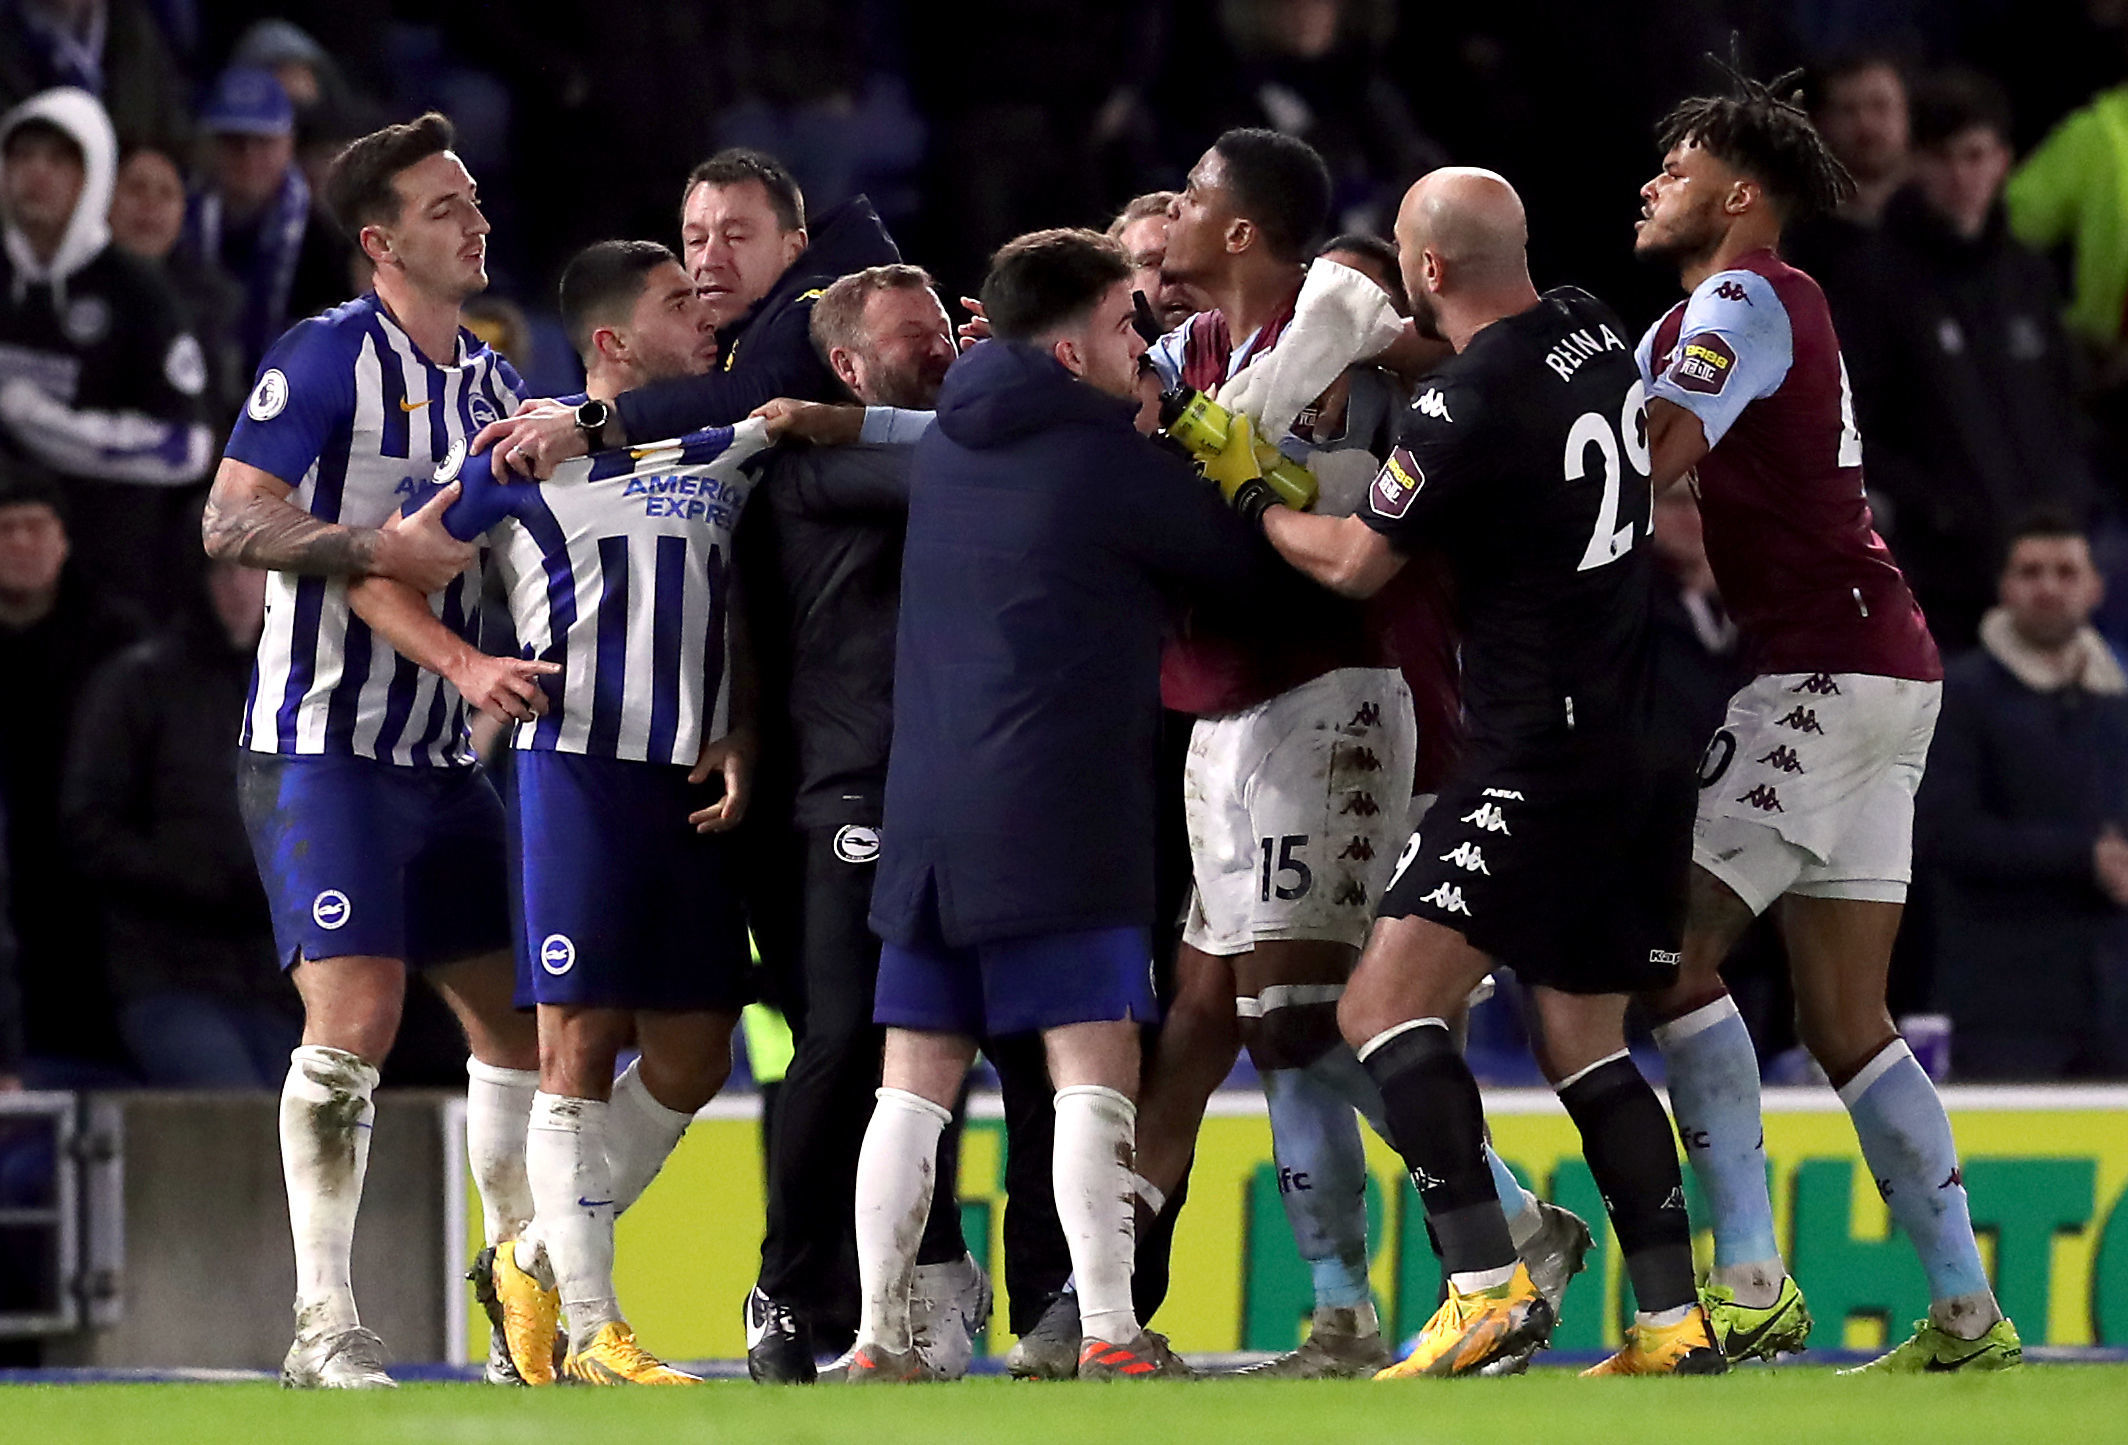 Bosses past and present stick up for Neal Maupay after scuffle